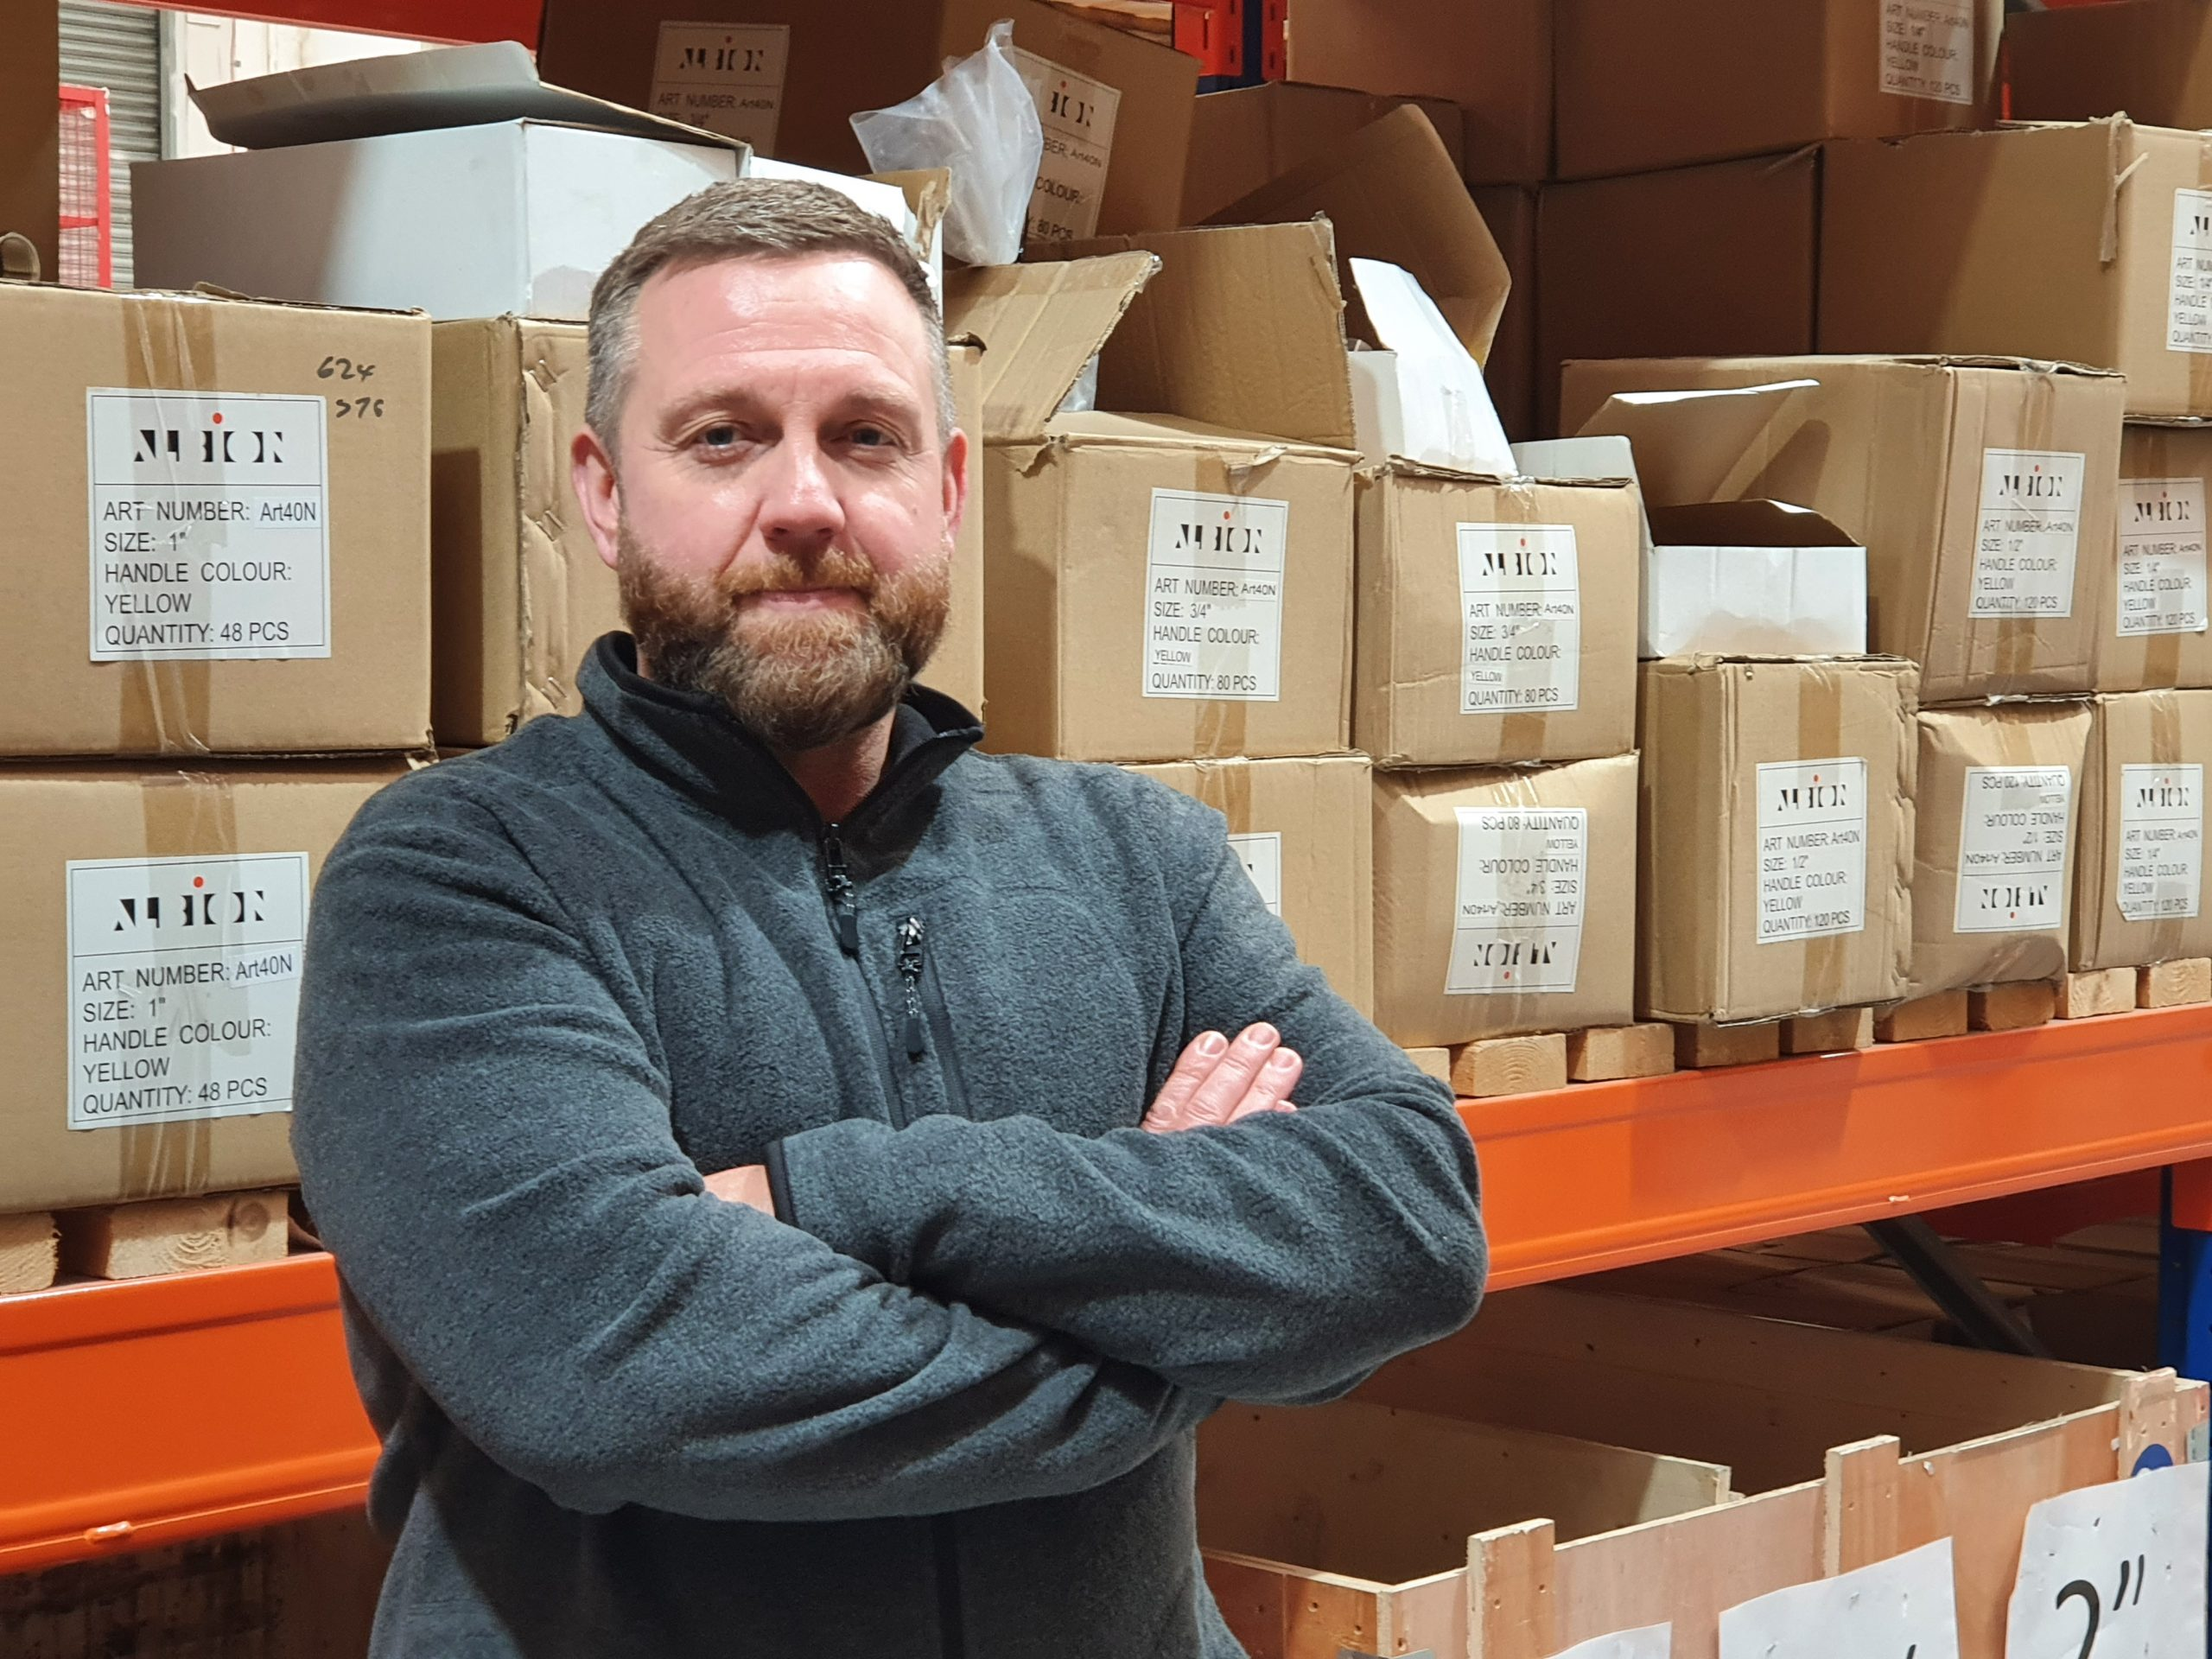 Albion's Warehouse Manager